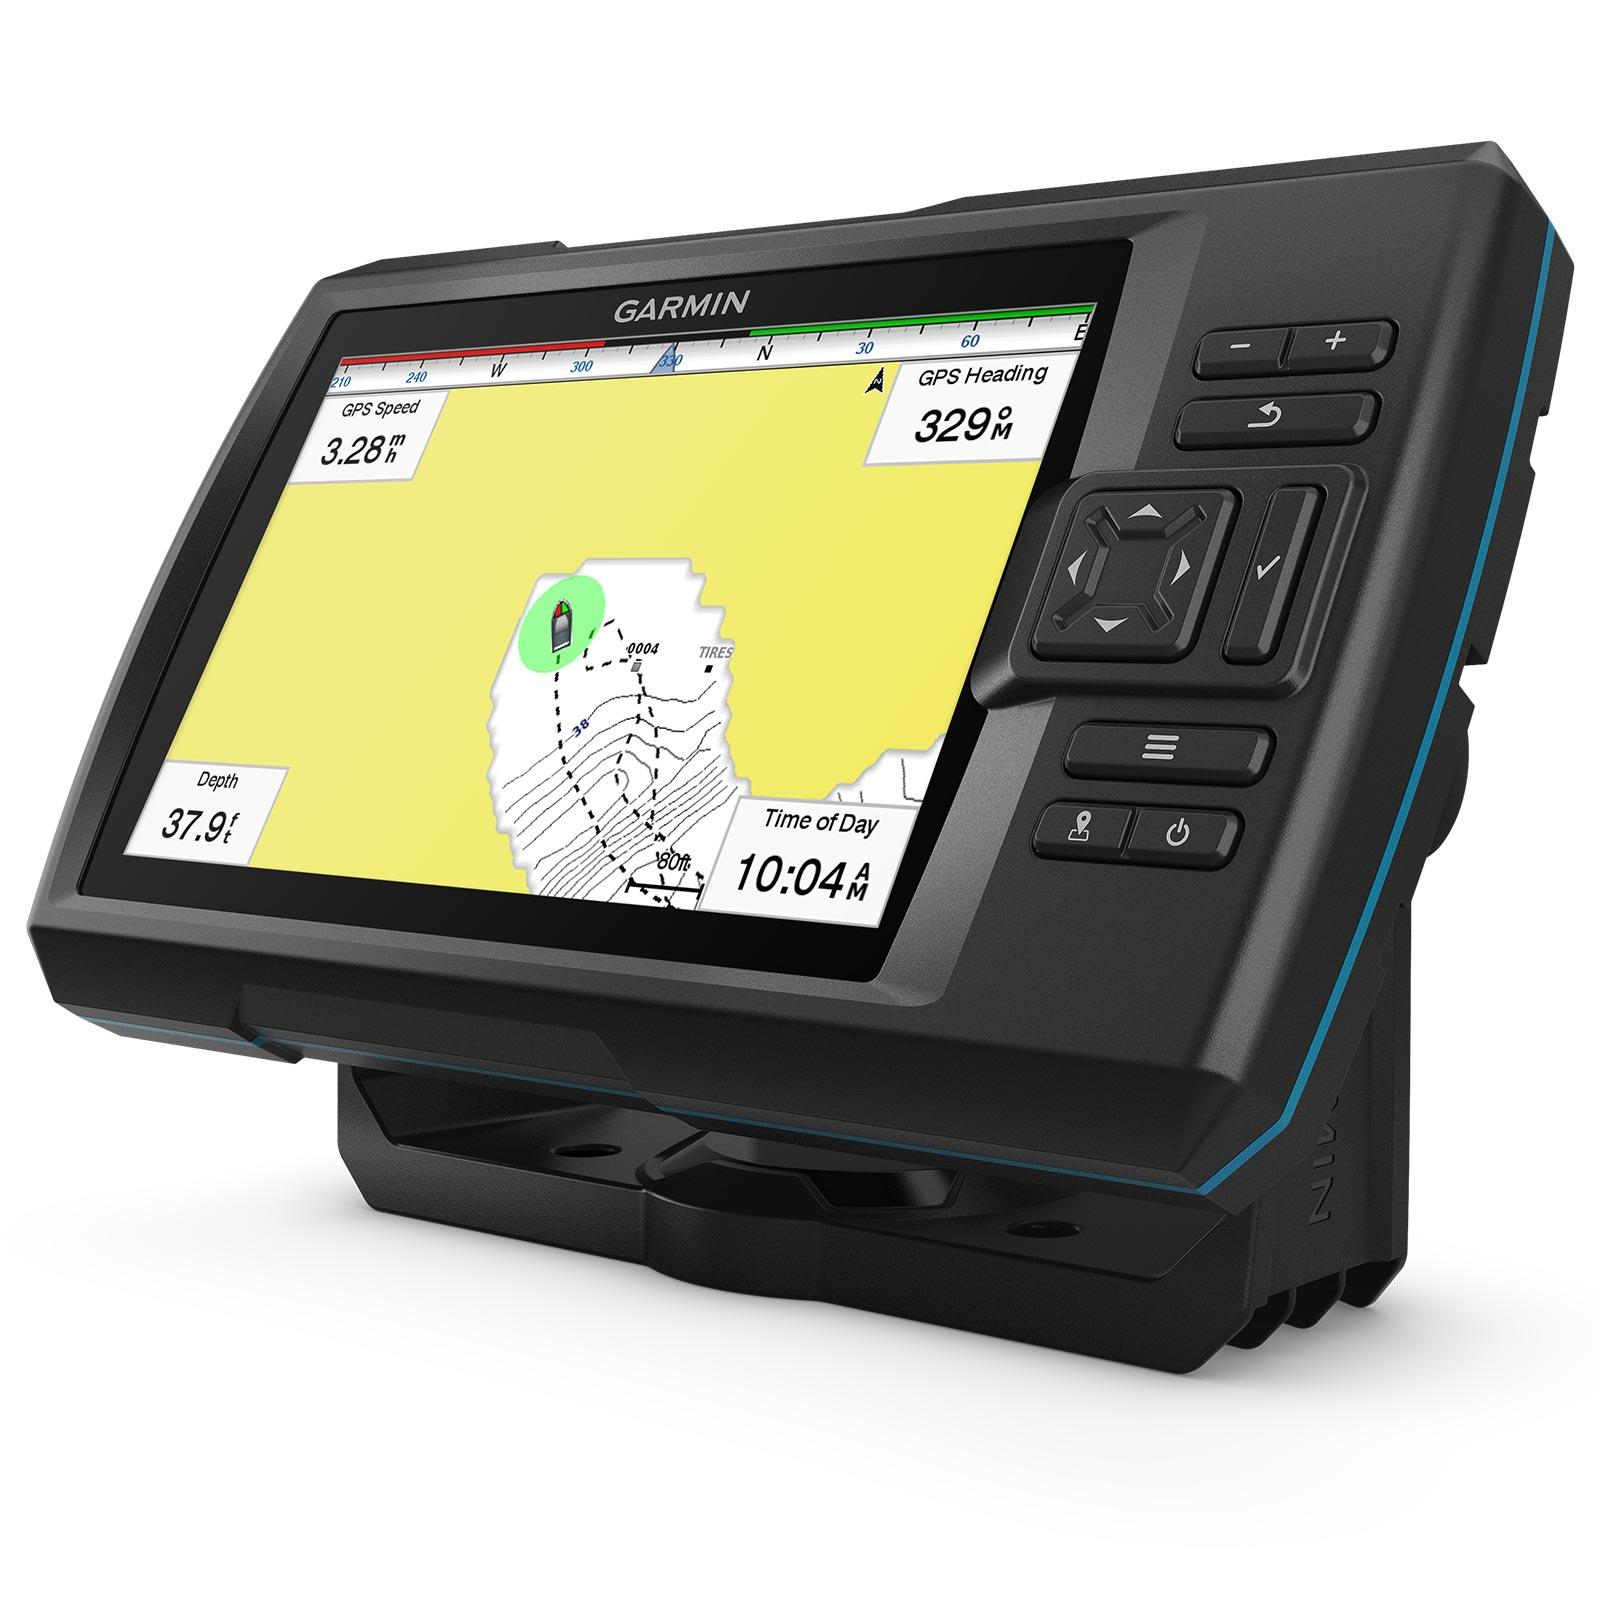 Garmin STRIKER Vivid 7cv with GT20-TM Transducer Full Screen